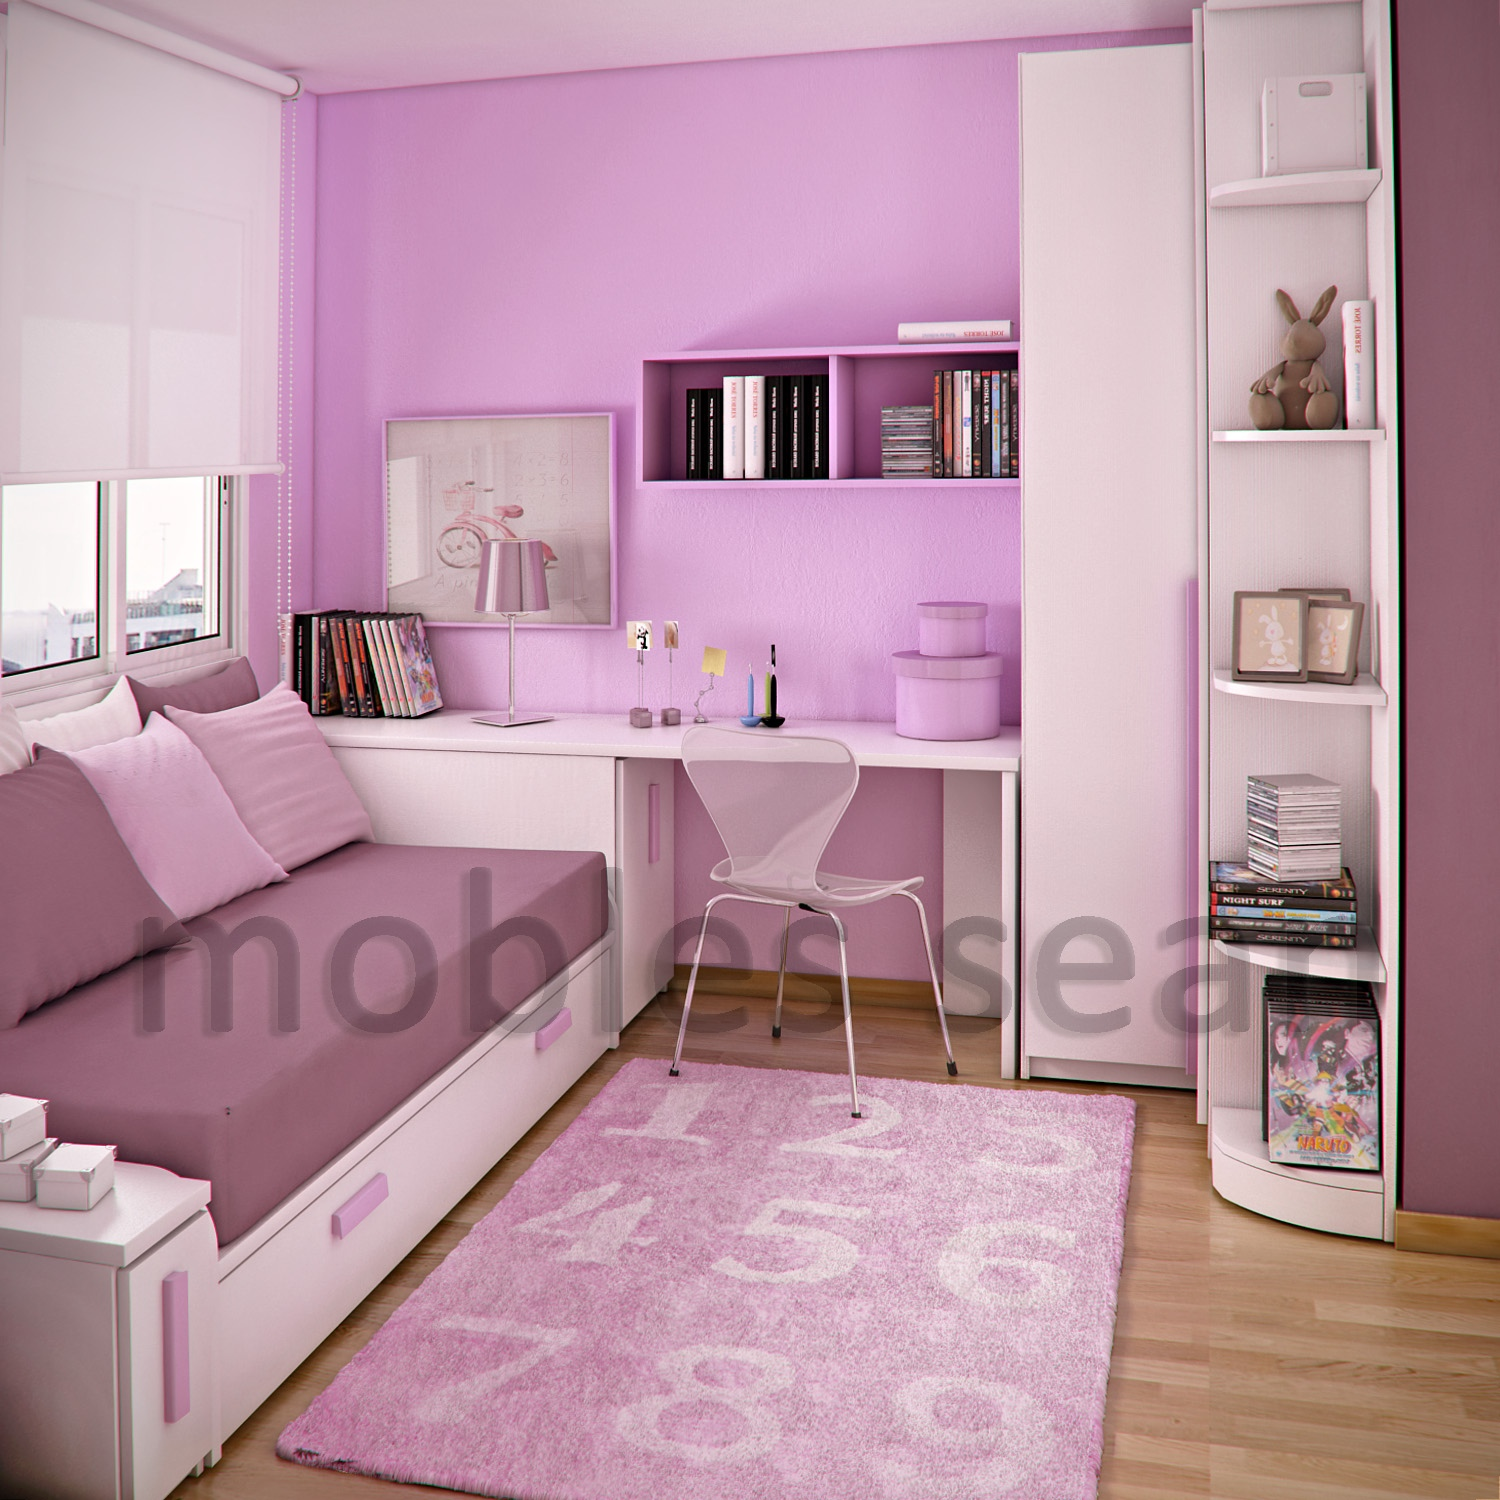 space saving designs for small kids rooms - Bedroom Design Ideas For Kids